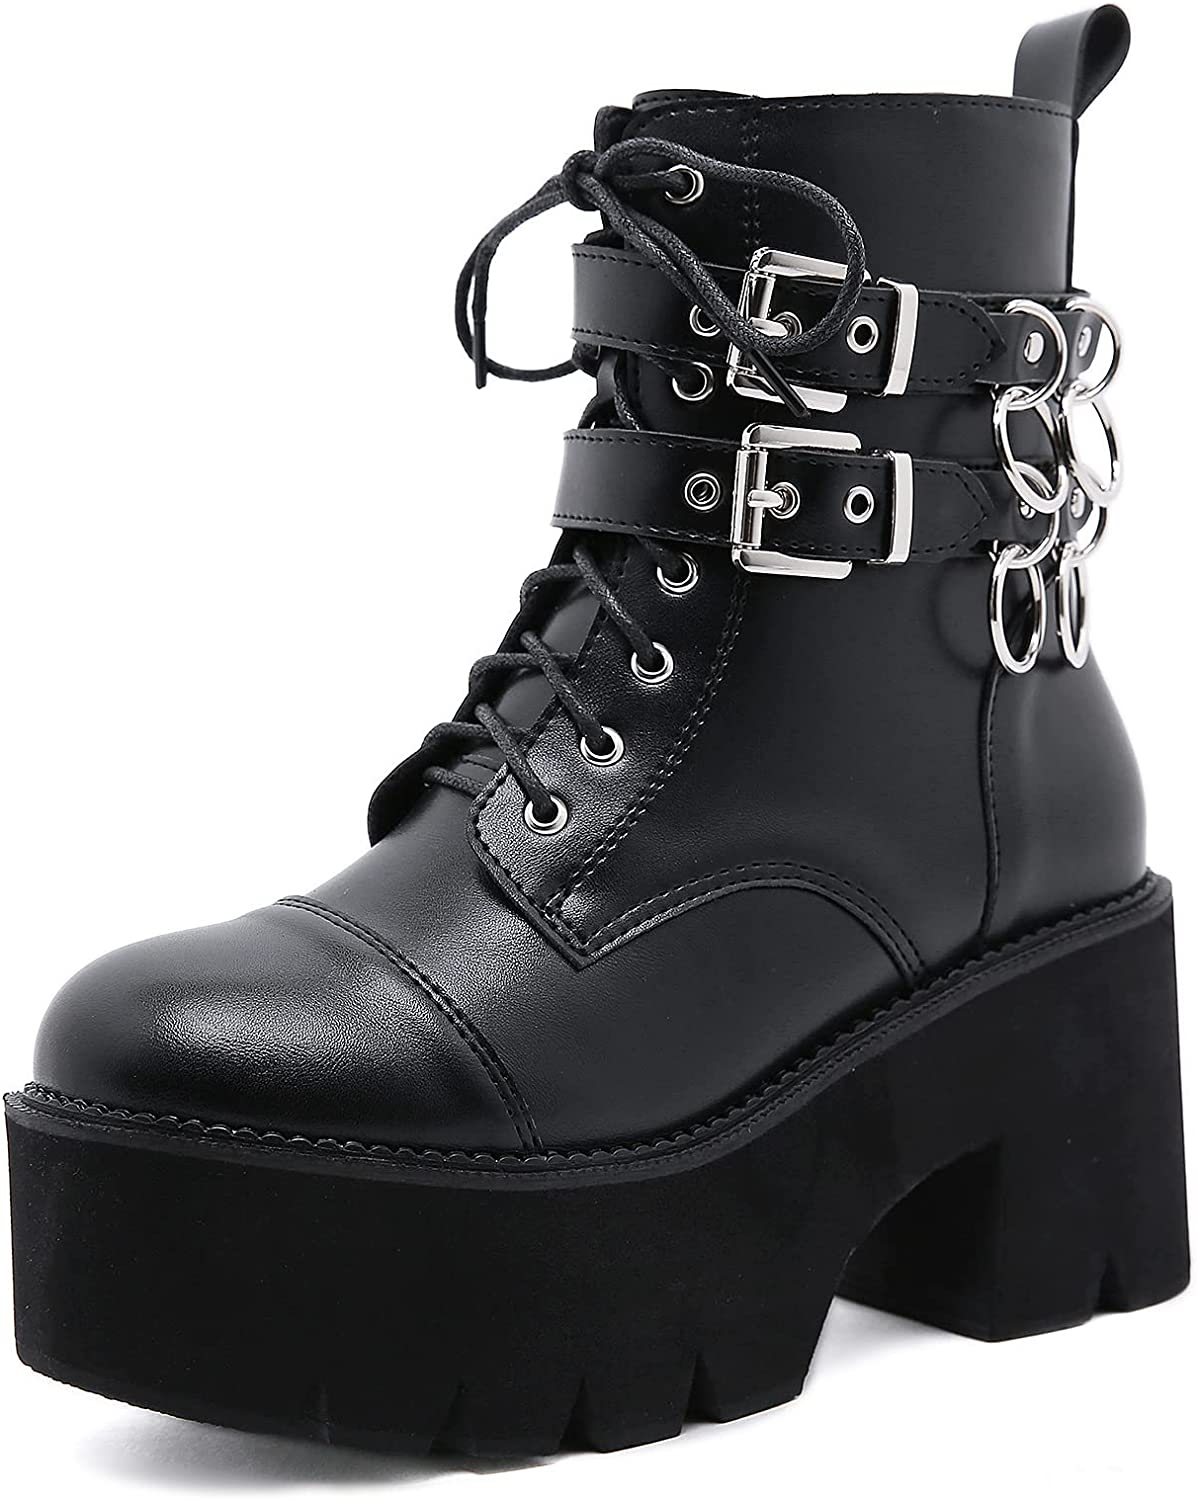 Ranking TOP17 CYNLLIO Women's At the price Black Gothic Platform Strap Buckle Boots Double